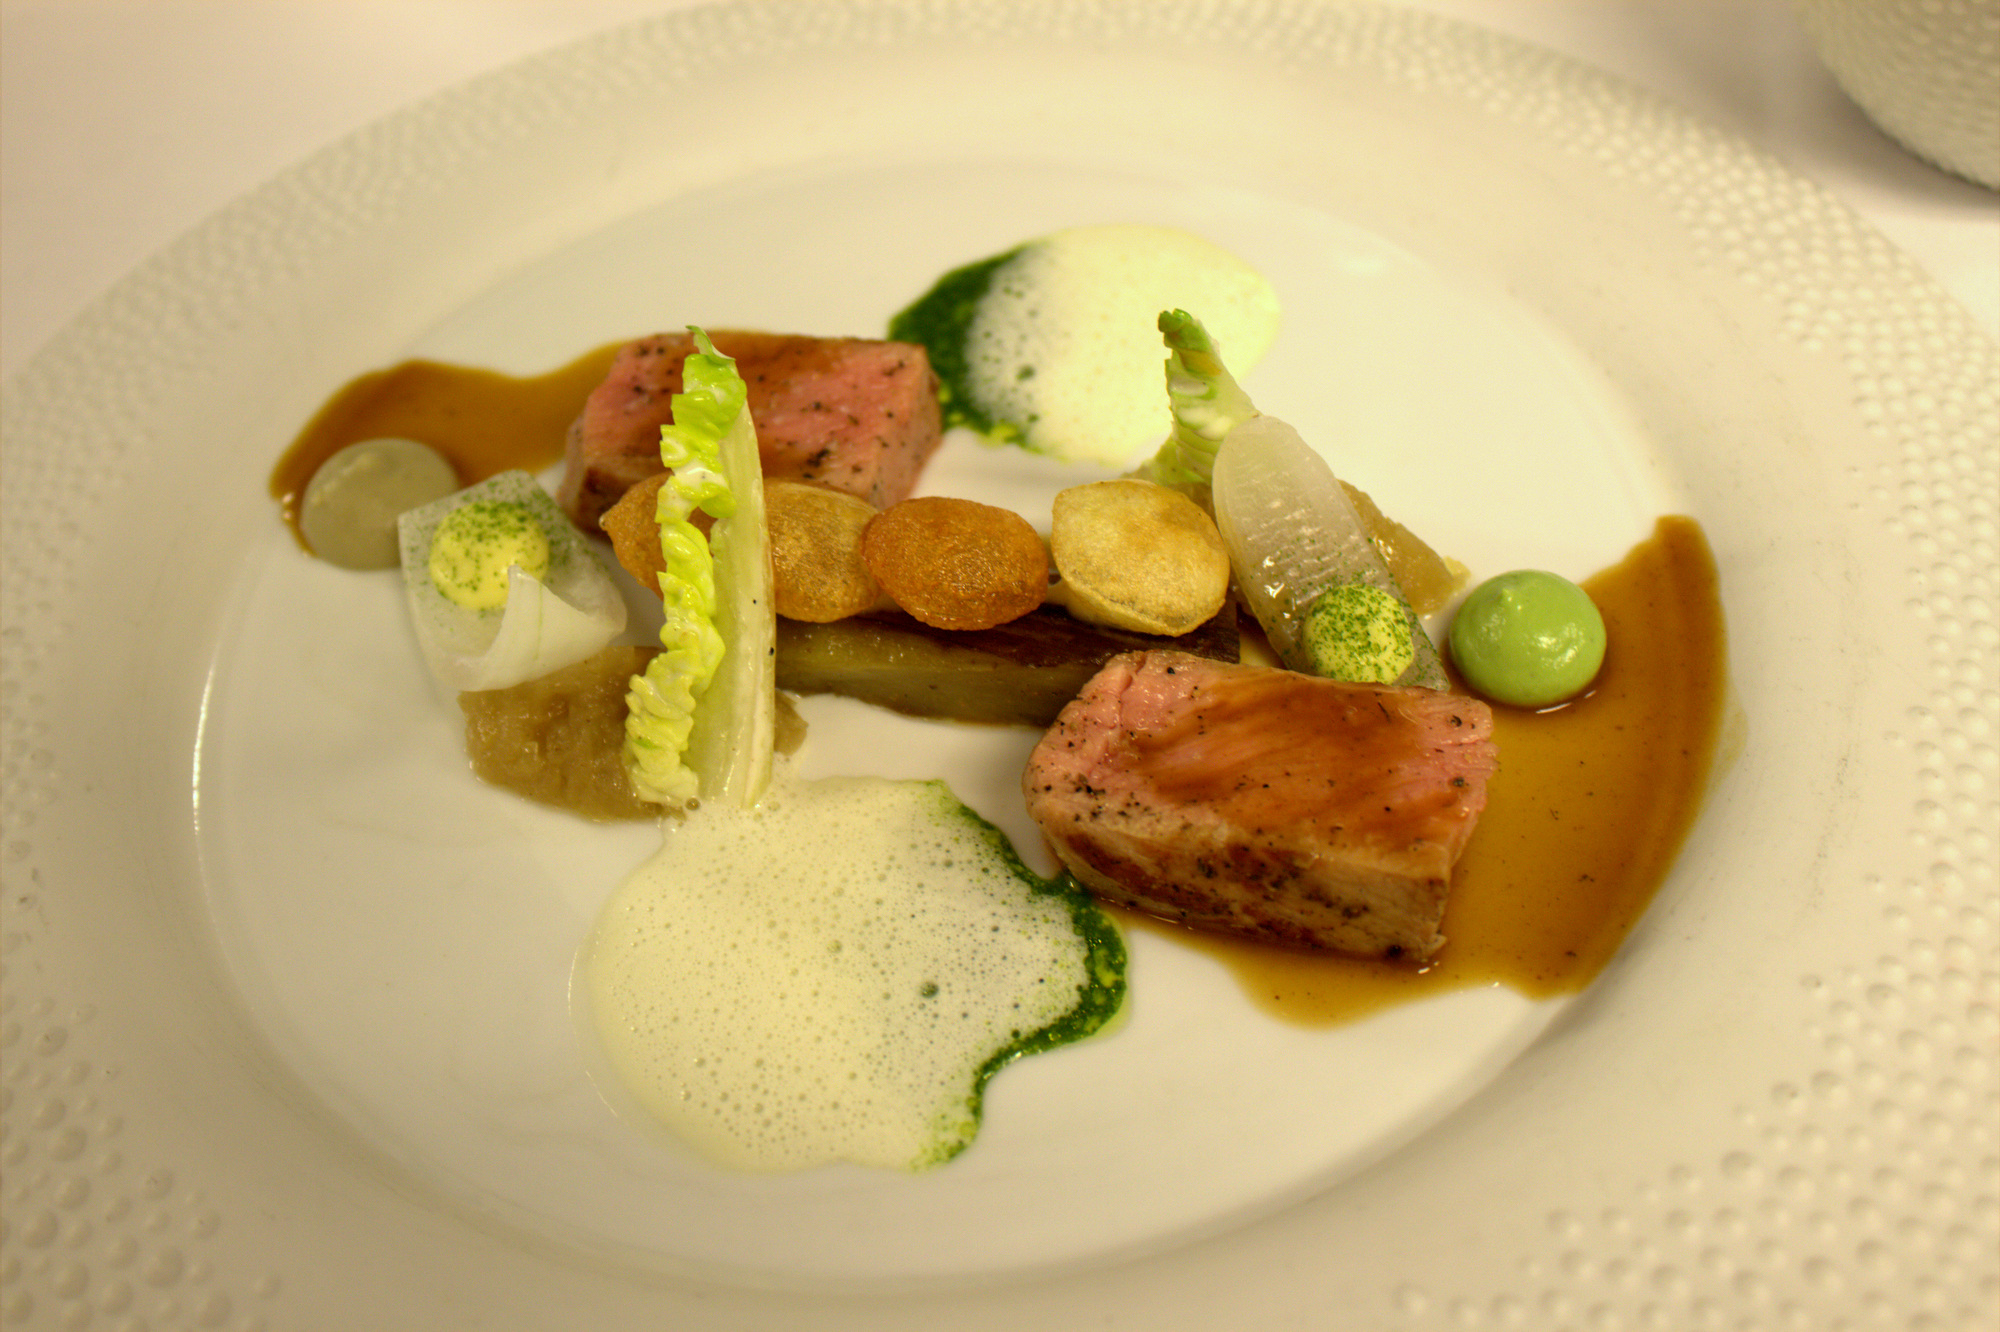 veal dish is served with sweet onion, aubergine, artichoke and a garlic distillation